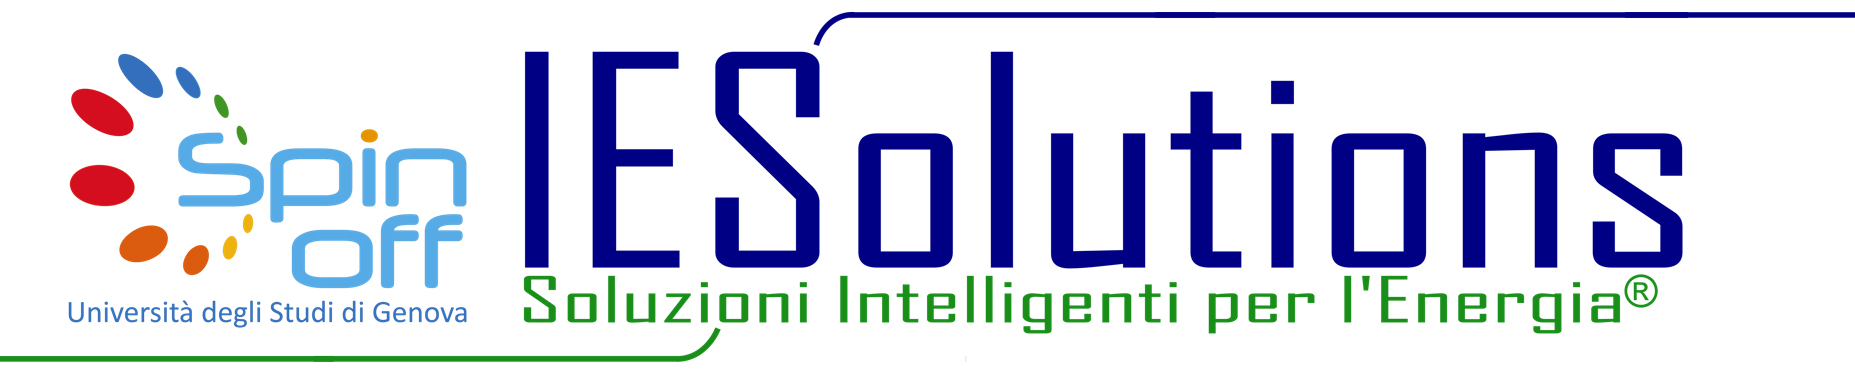 iesolutions web